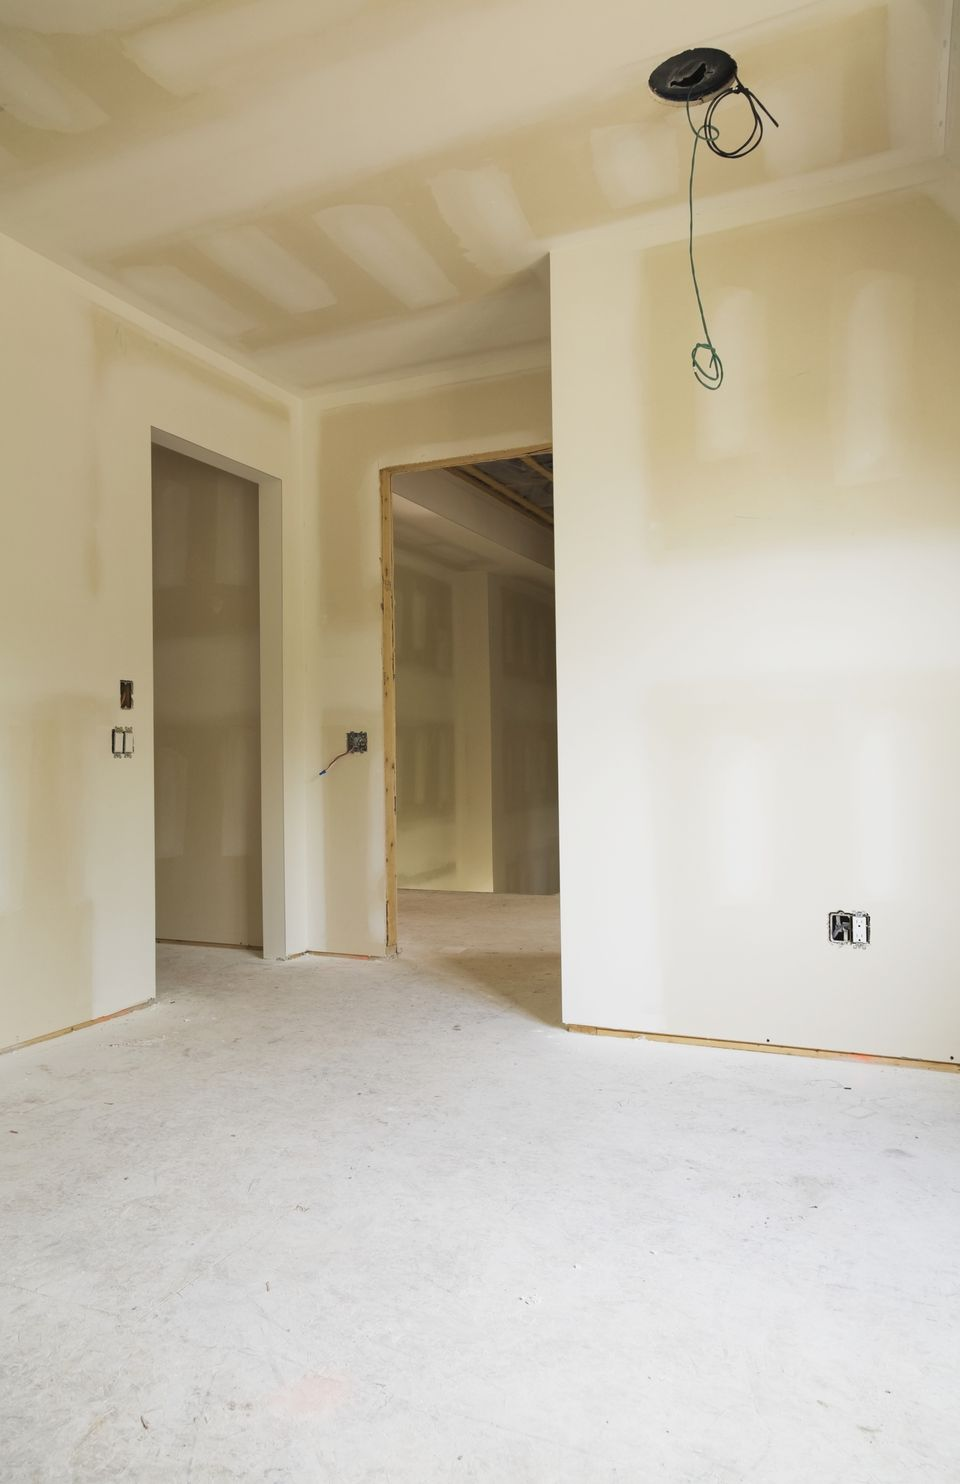 An unfinished room with hung drywall